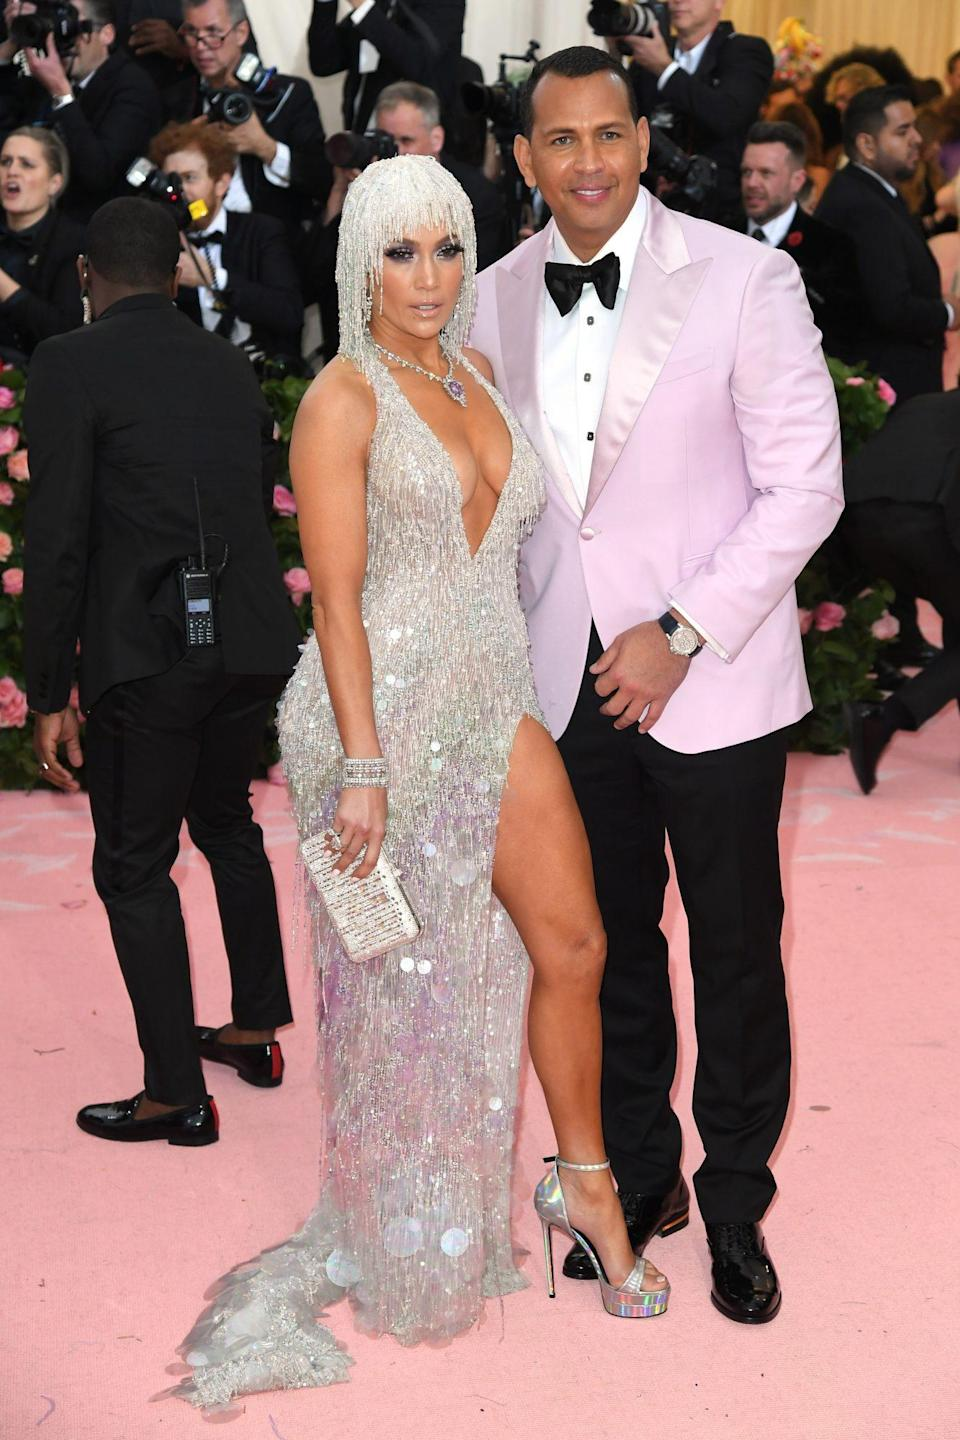 <p>The pair stepped out again at the Met Gala in 2019, with Lopez wearing a Versace dress and her fiancé wearing a pink tuxedo. </p>